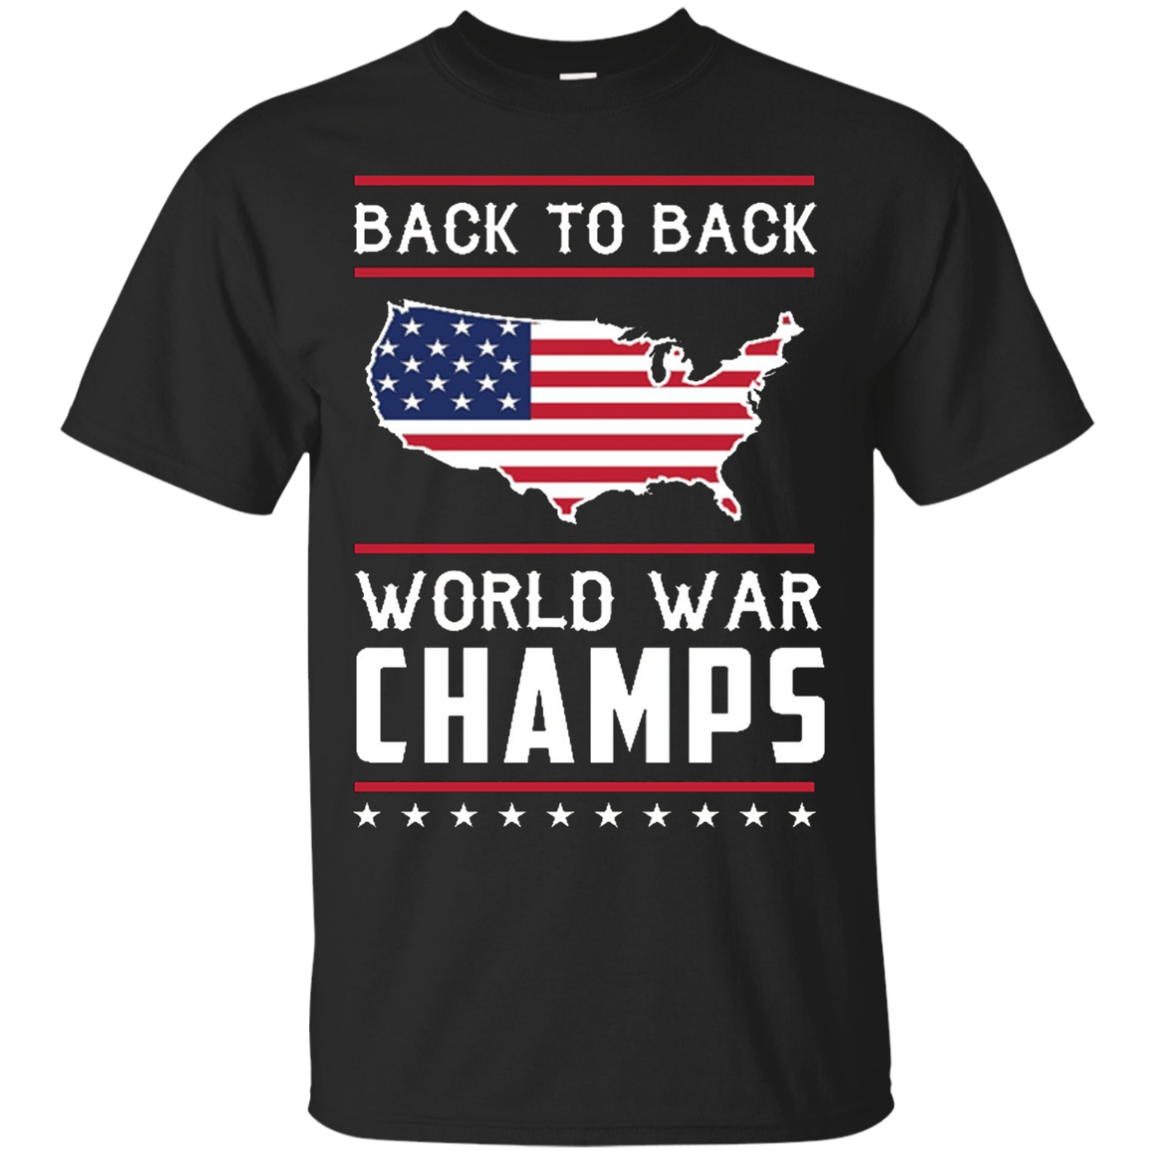 Back to Back World War Champs USA T-Shirt - America T-Shirt,